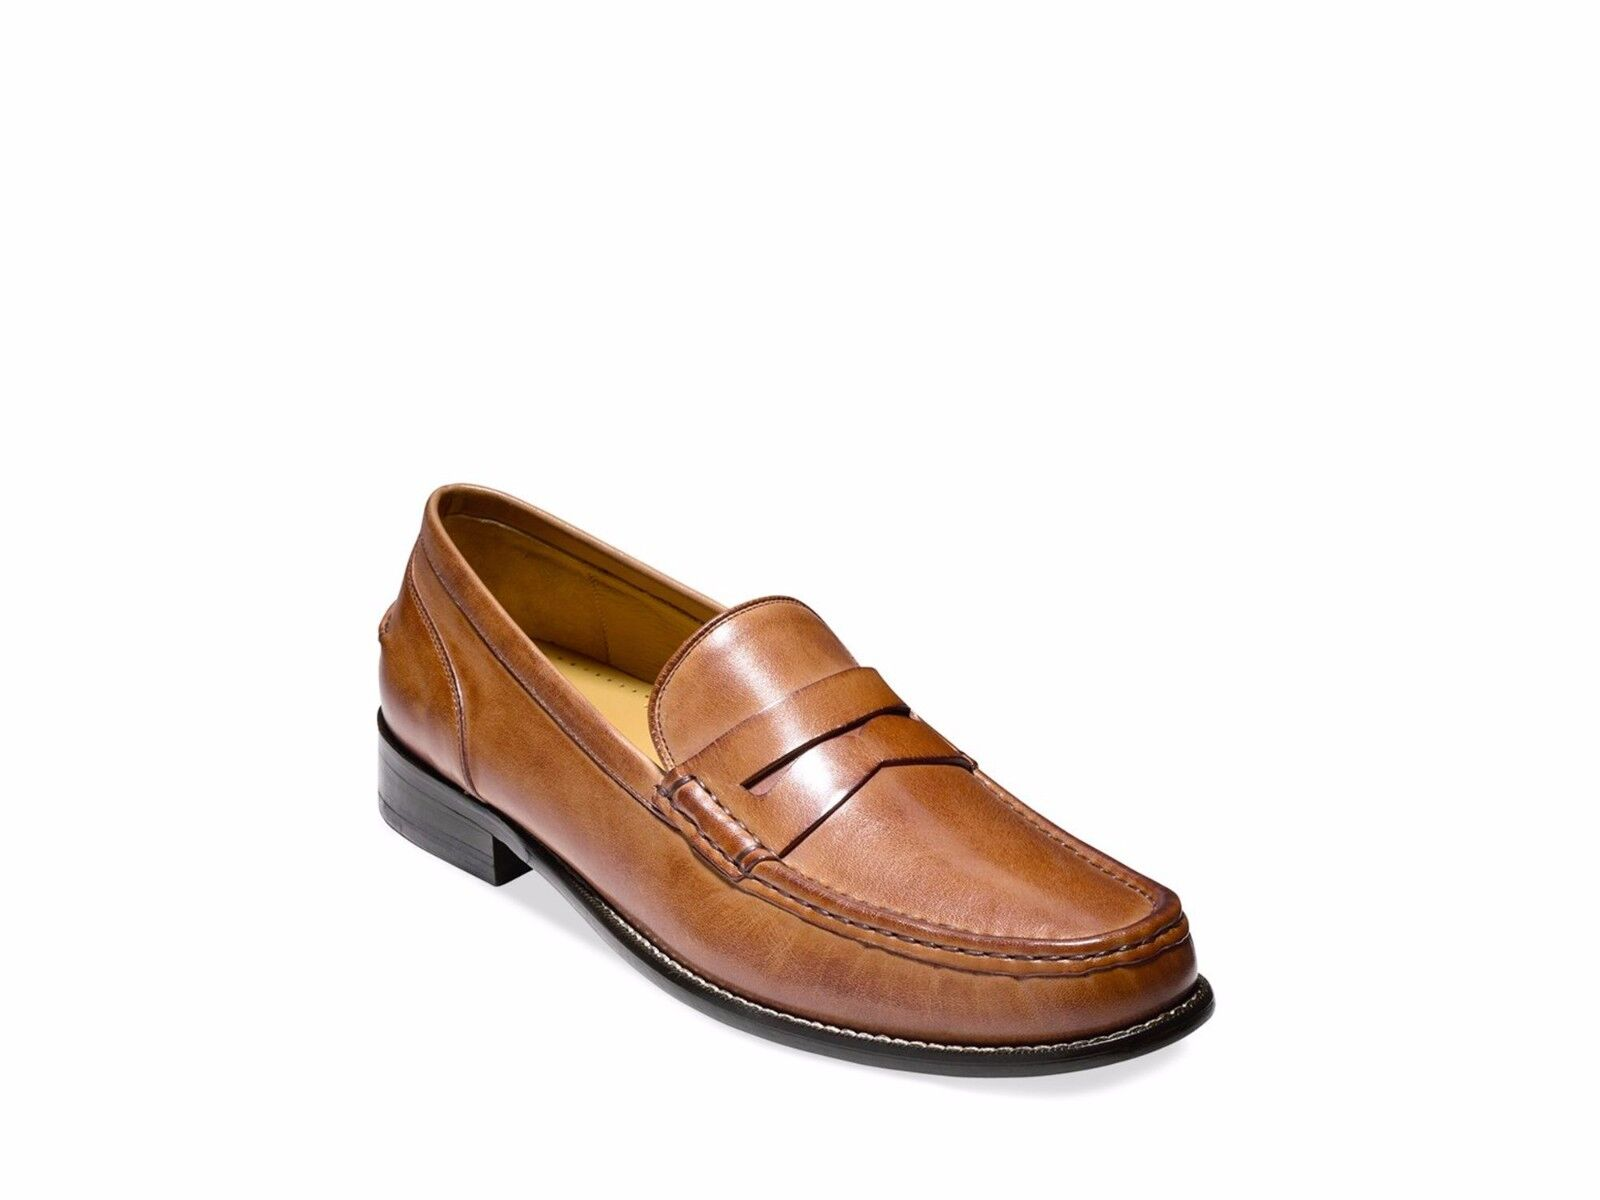 New Cole Haan Britton Penny Loafers Brown 7.5M Slip On